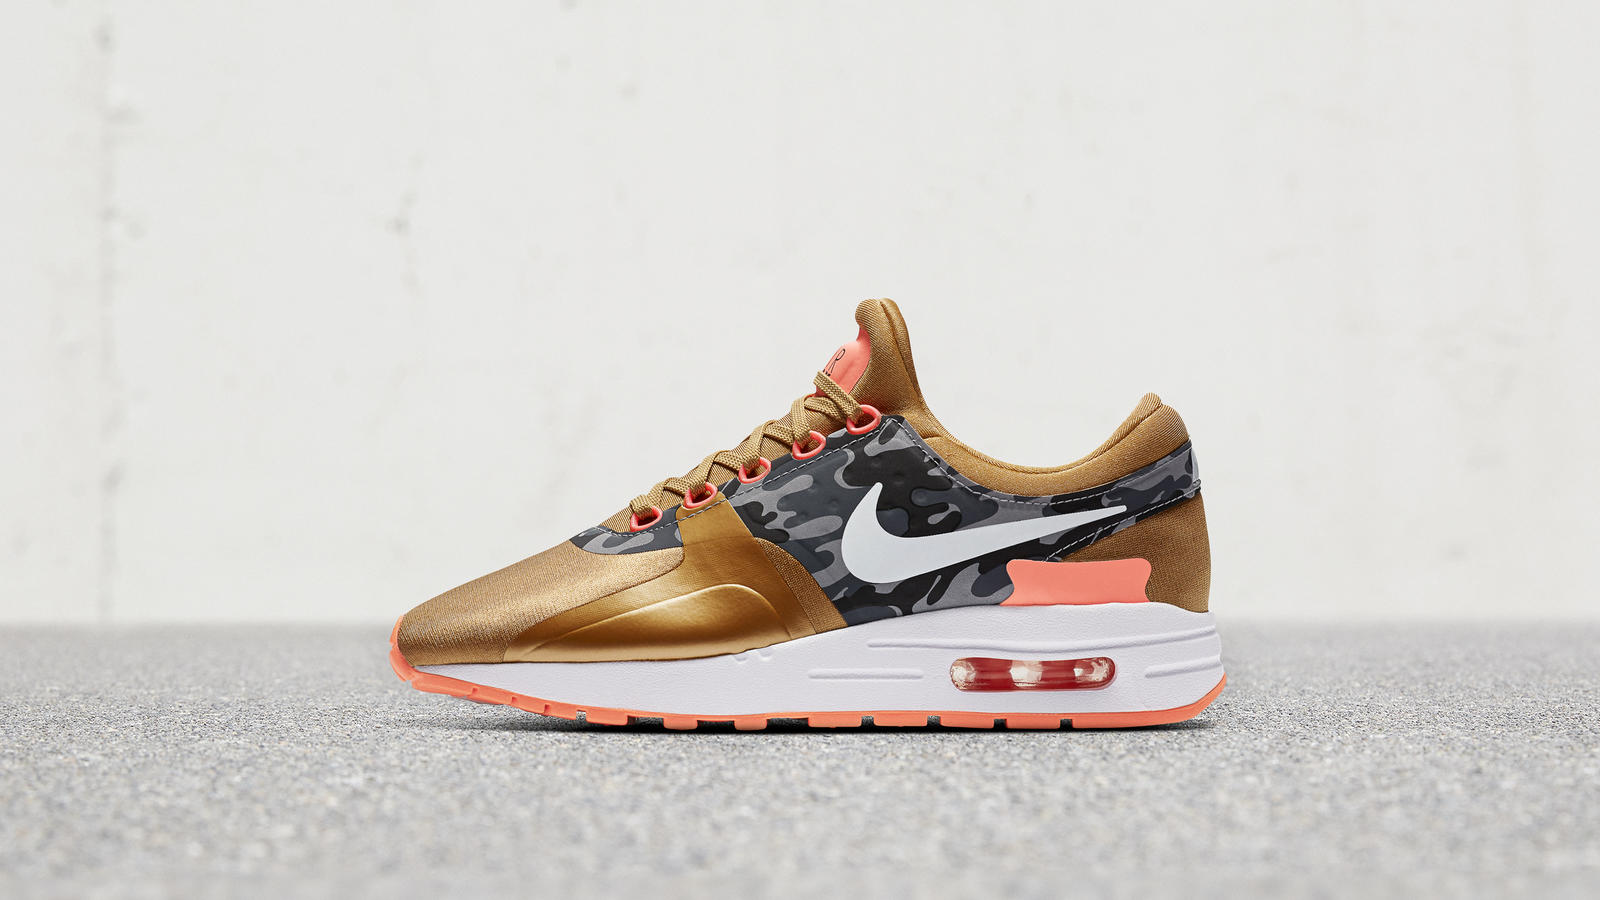 finest selection 15546 a4569 Annie Leblanc s Nike Air Max Zero is available January 20 in grade school  sizes on nike.com in North America.